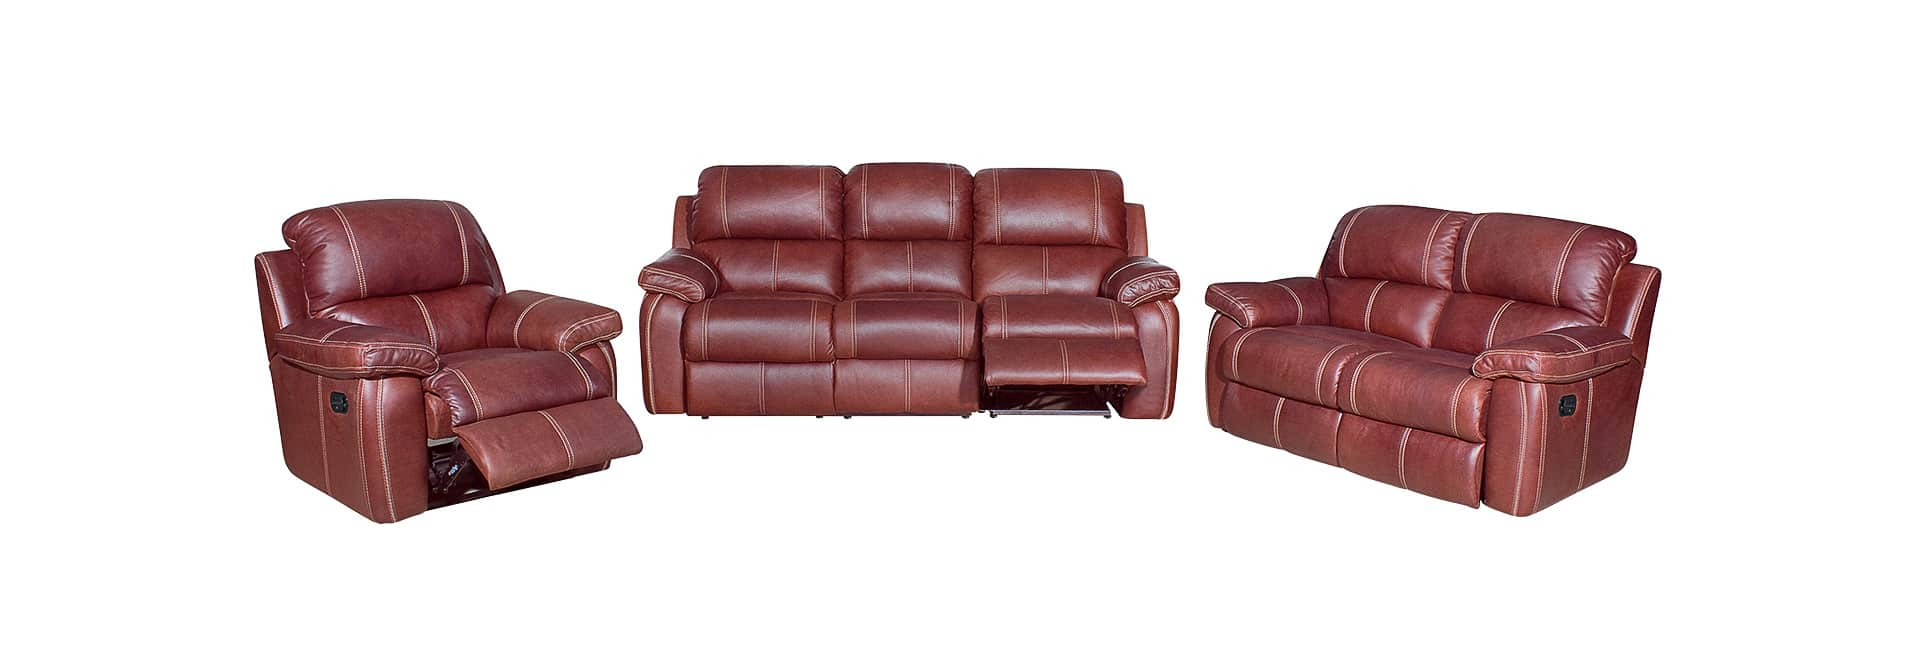 3 Piece 5 Action Sophia Recliner Lounge Suite - Danie Du Toit Furnishers